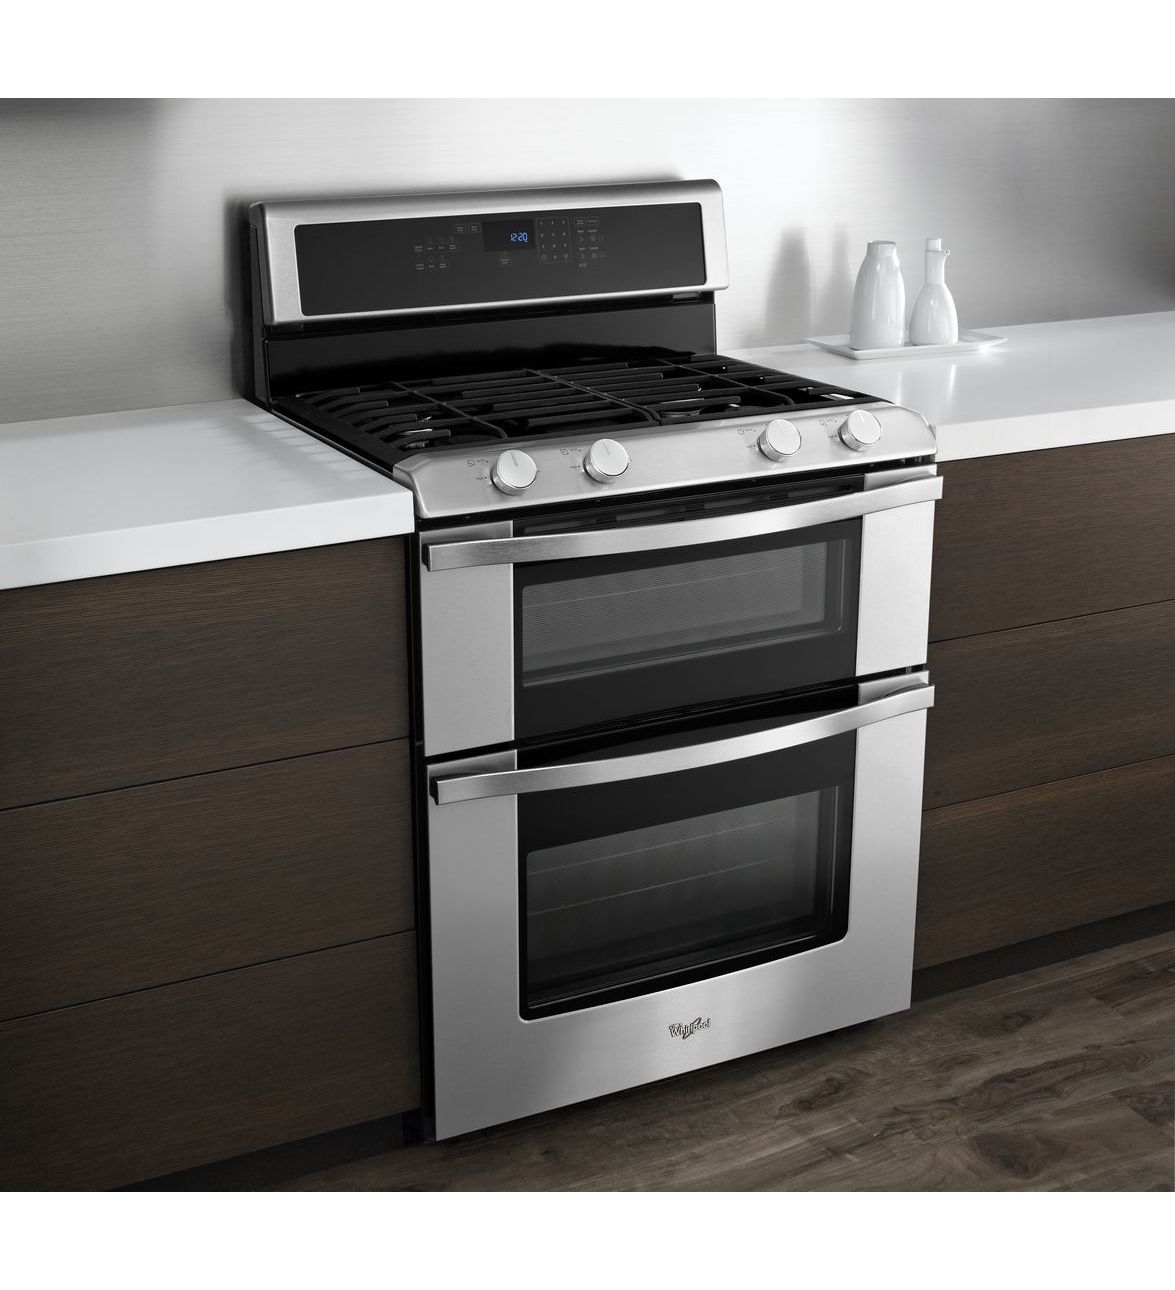 whirlpool wgg555s0bs 6 0 total cu ft double oven gas range with accubake system. Black Bedroom Furniture Sets. Home Design Ideas